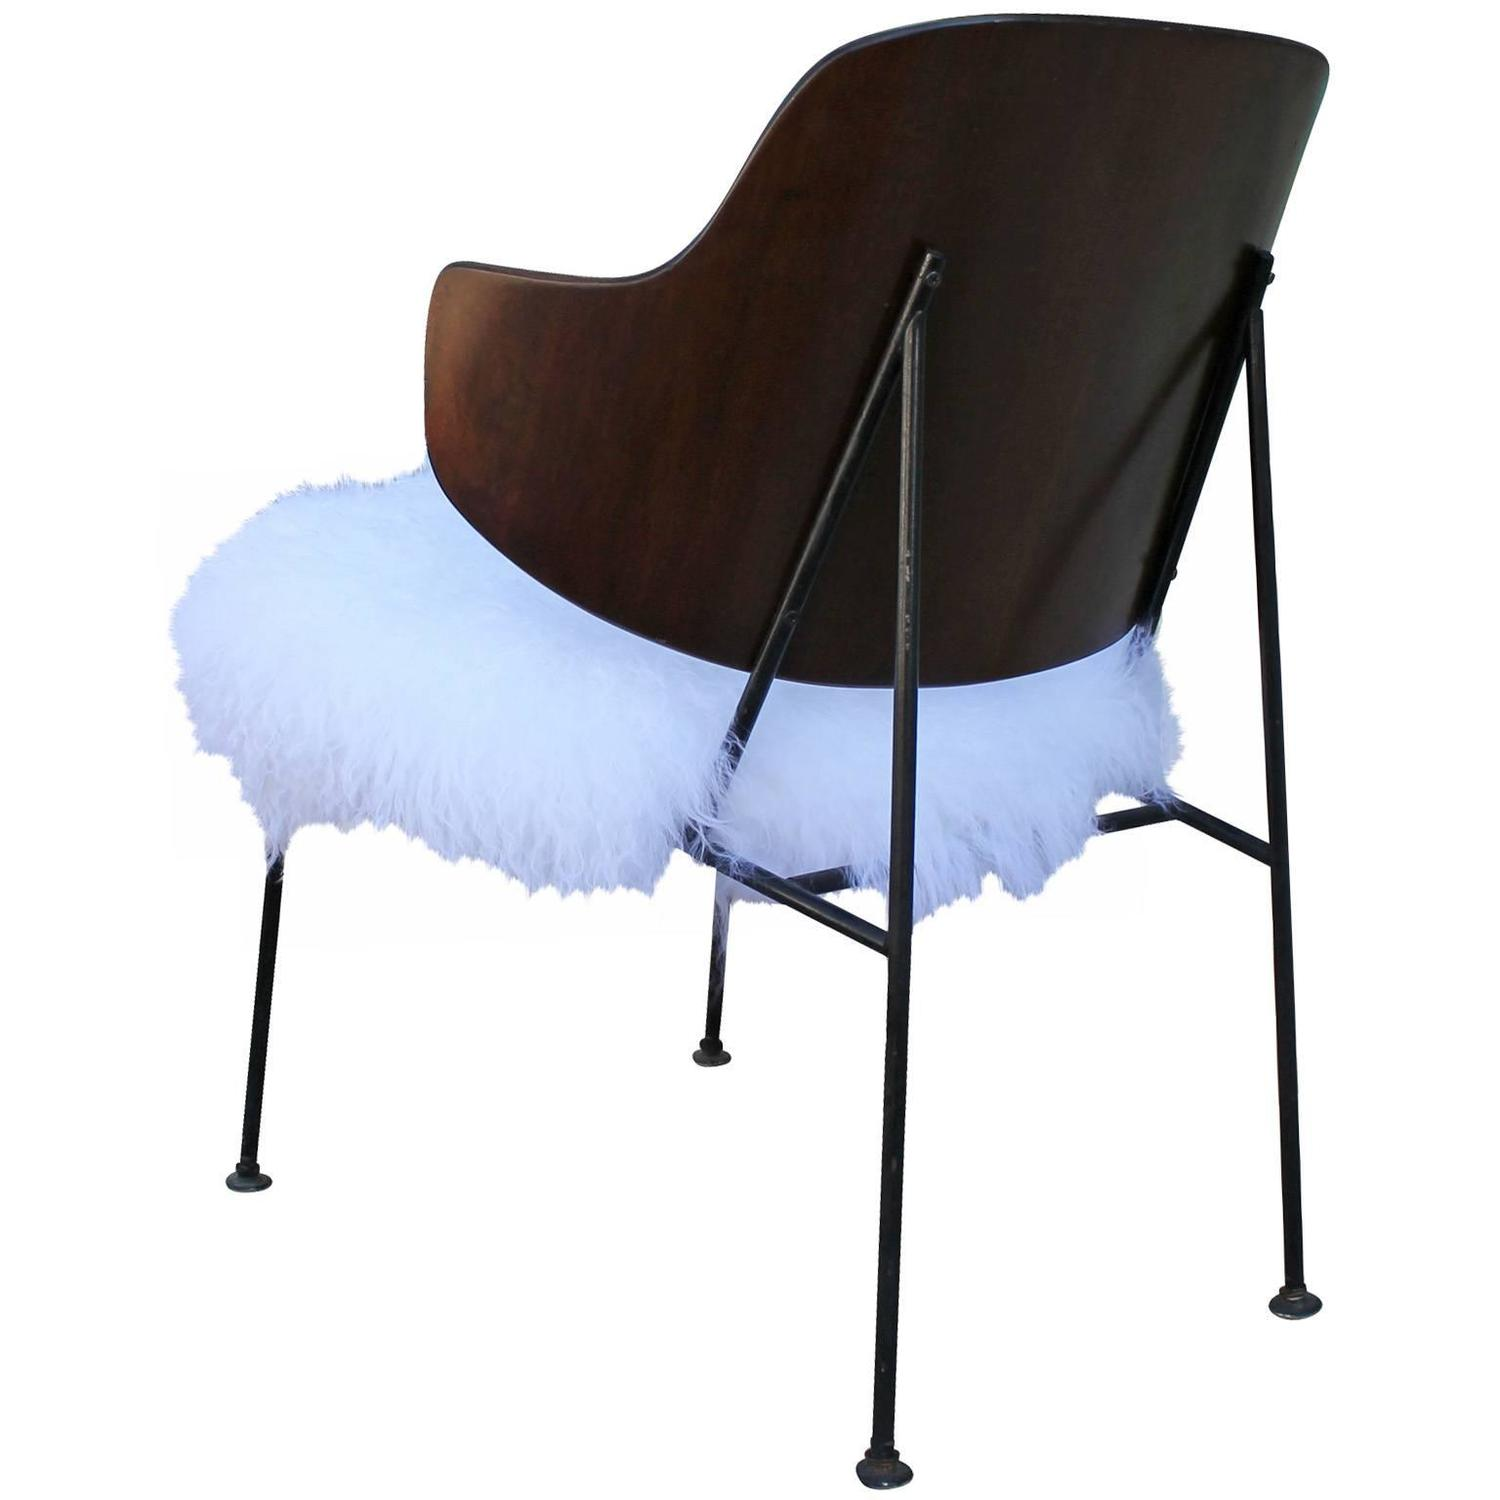 Furry Chairs Sculptural Kofod Larsen Penguin Chair In Curly Fur At 1stdibs